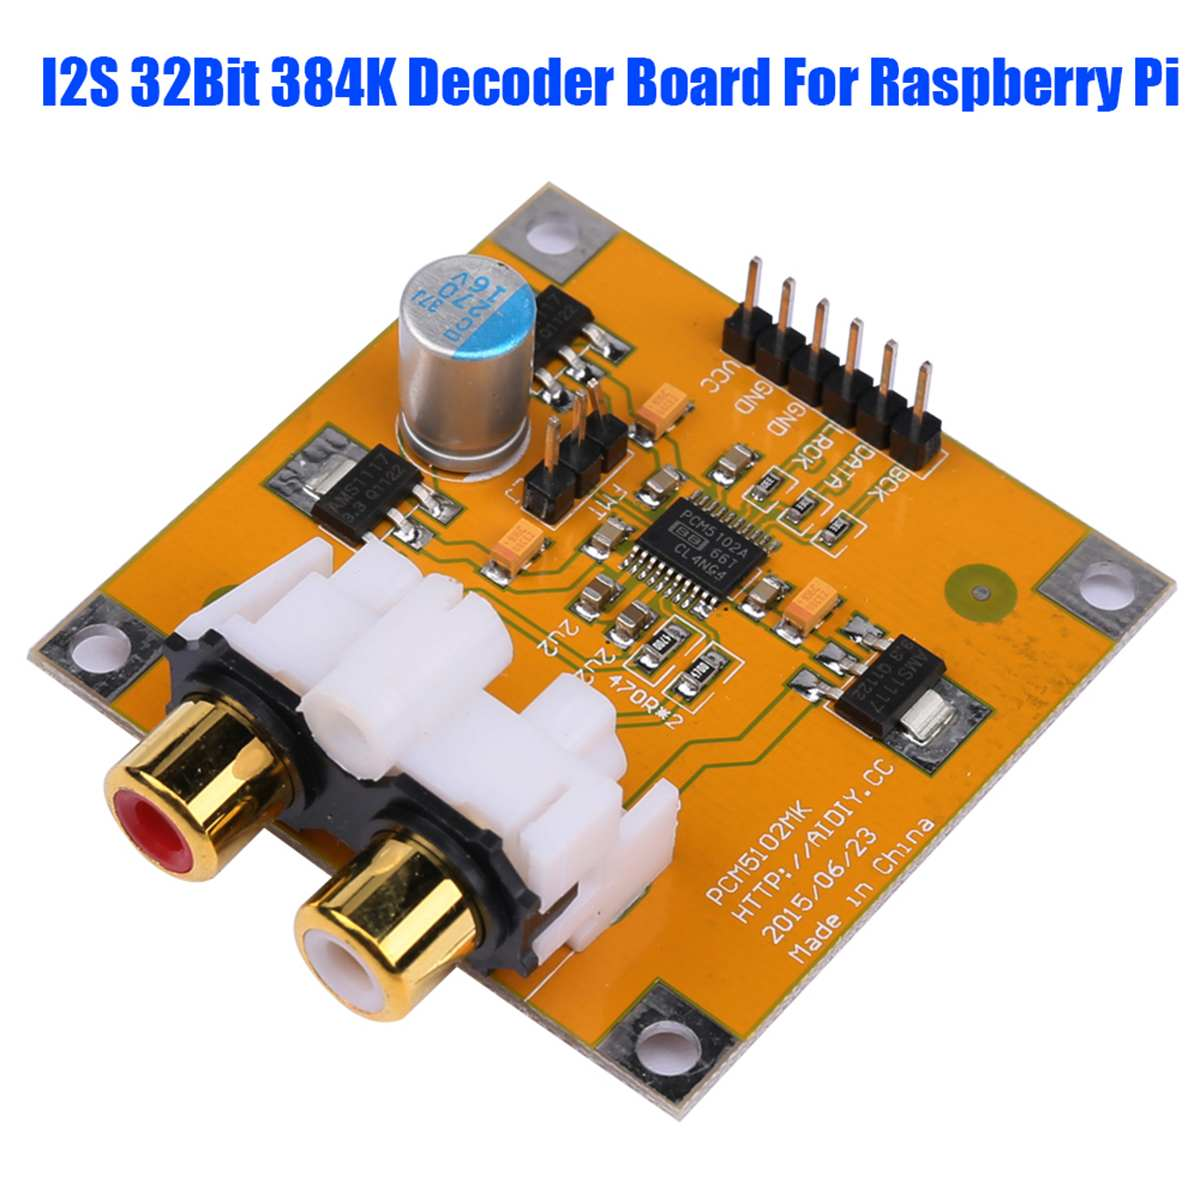 Cliate 1pc Dac Decoder Board M5102/pcm5102a I2s 32bit 384k For Raspberry Pi Red Core Player Accessories & Parts Audio & Video Replacement Parts